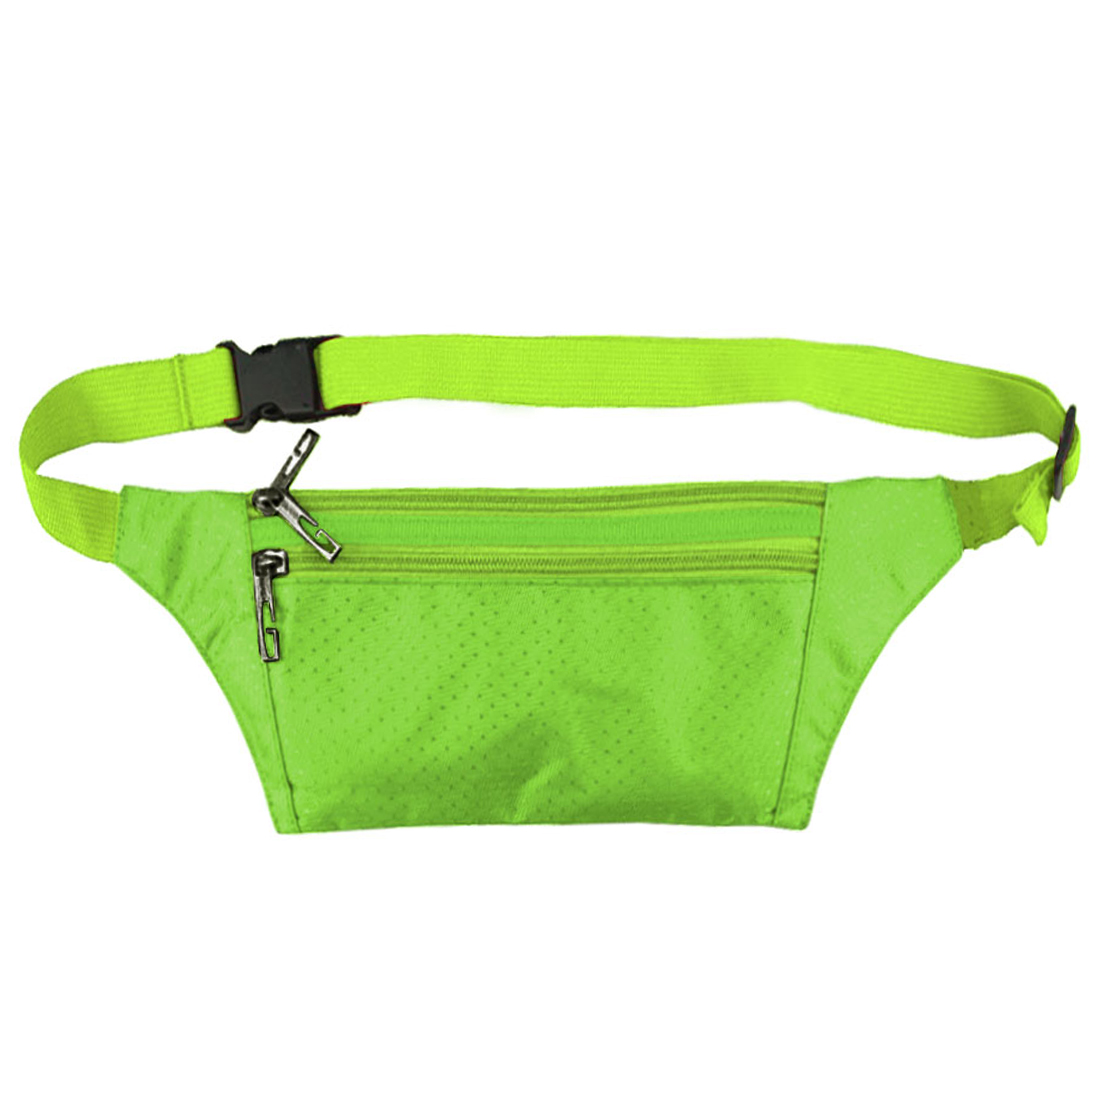 Unisex Three Zipper Pockets Argyle Design Waist Bag Green